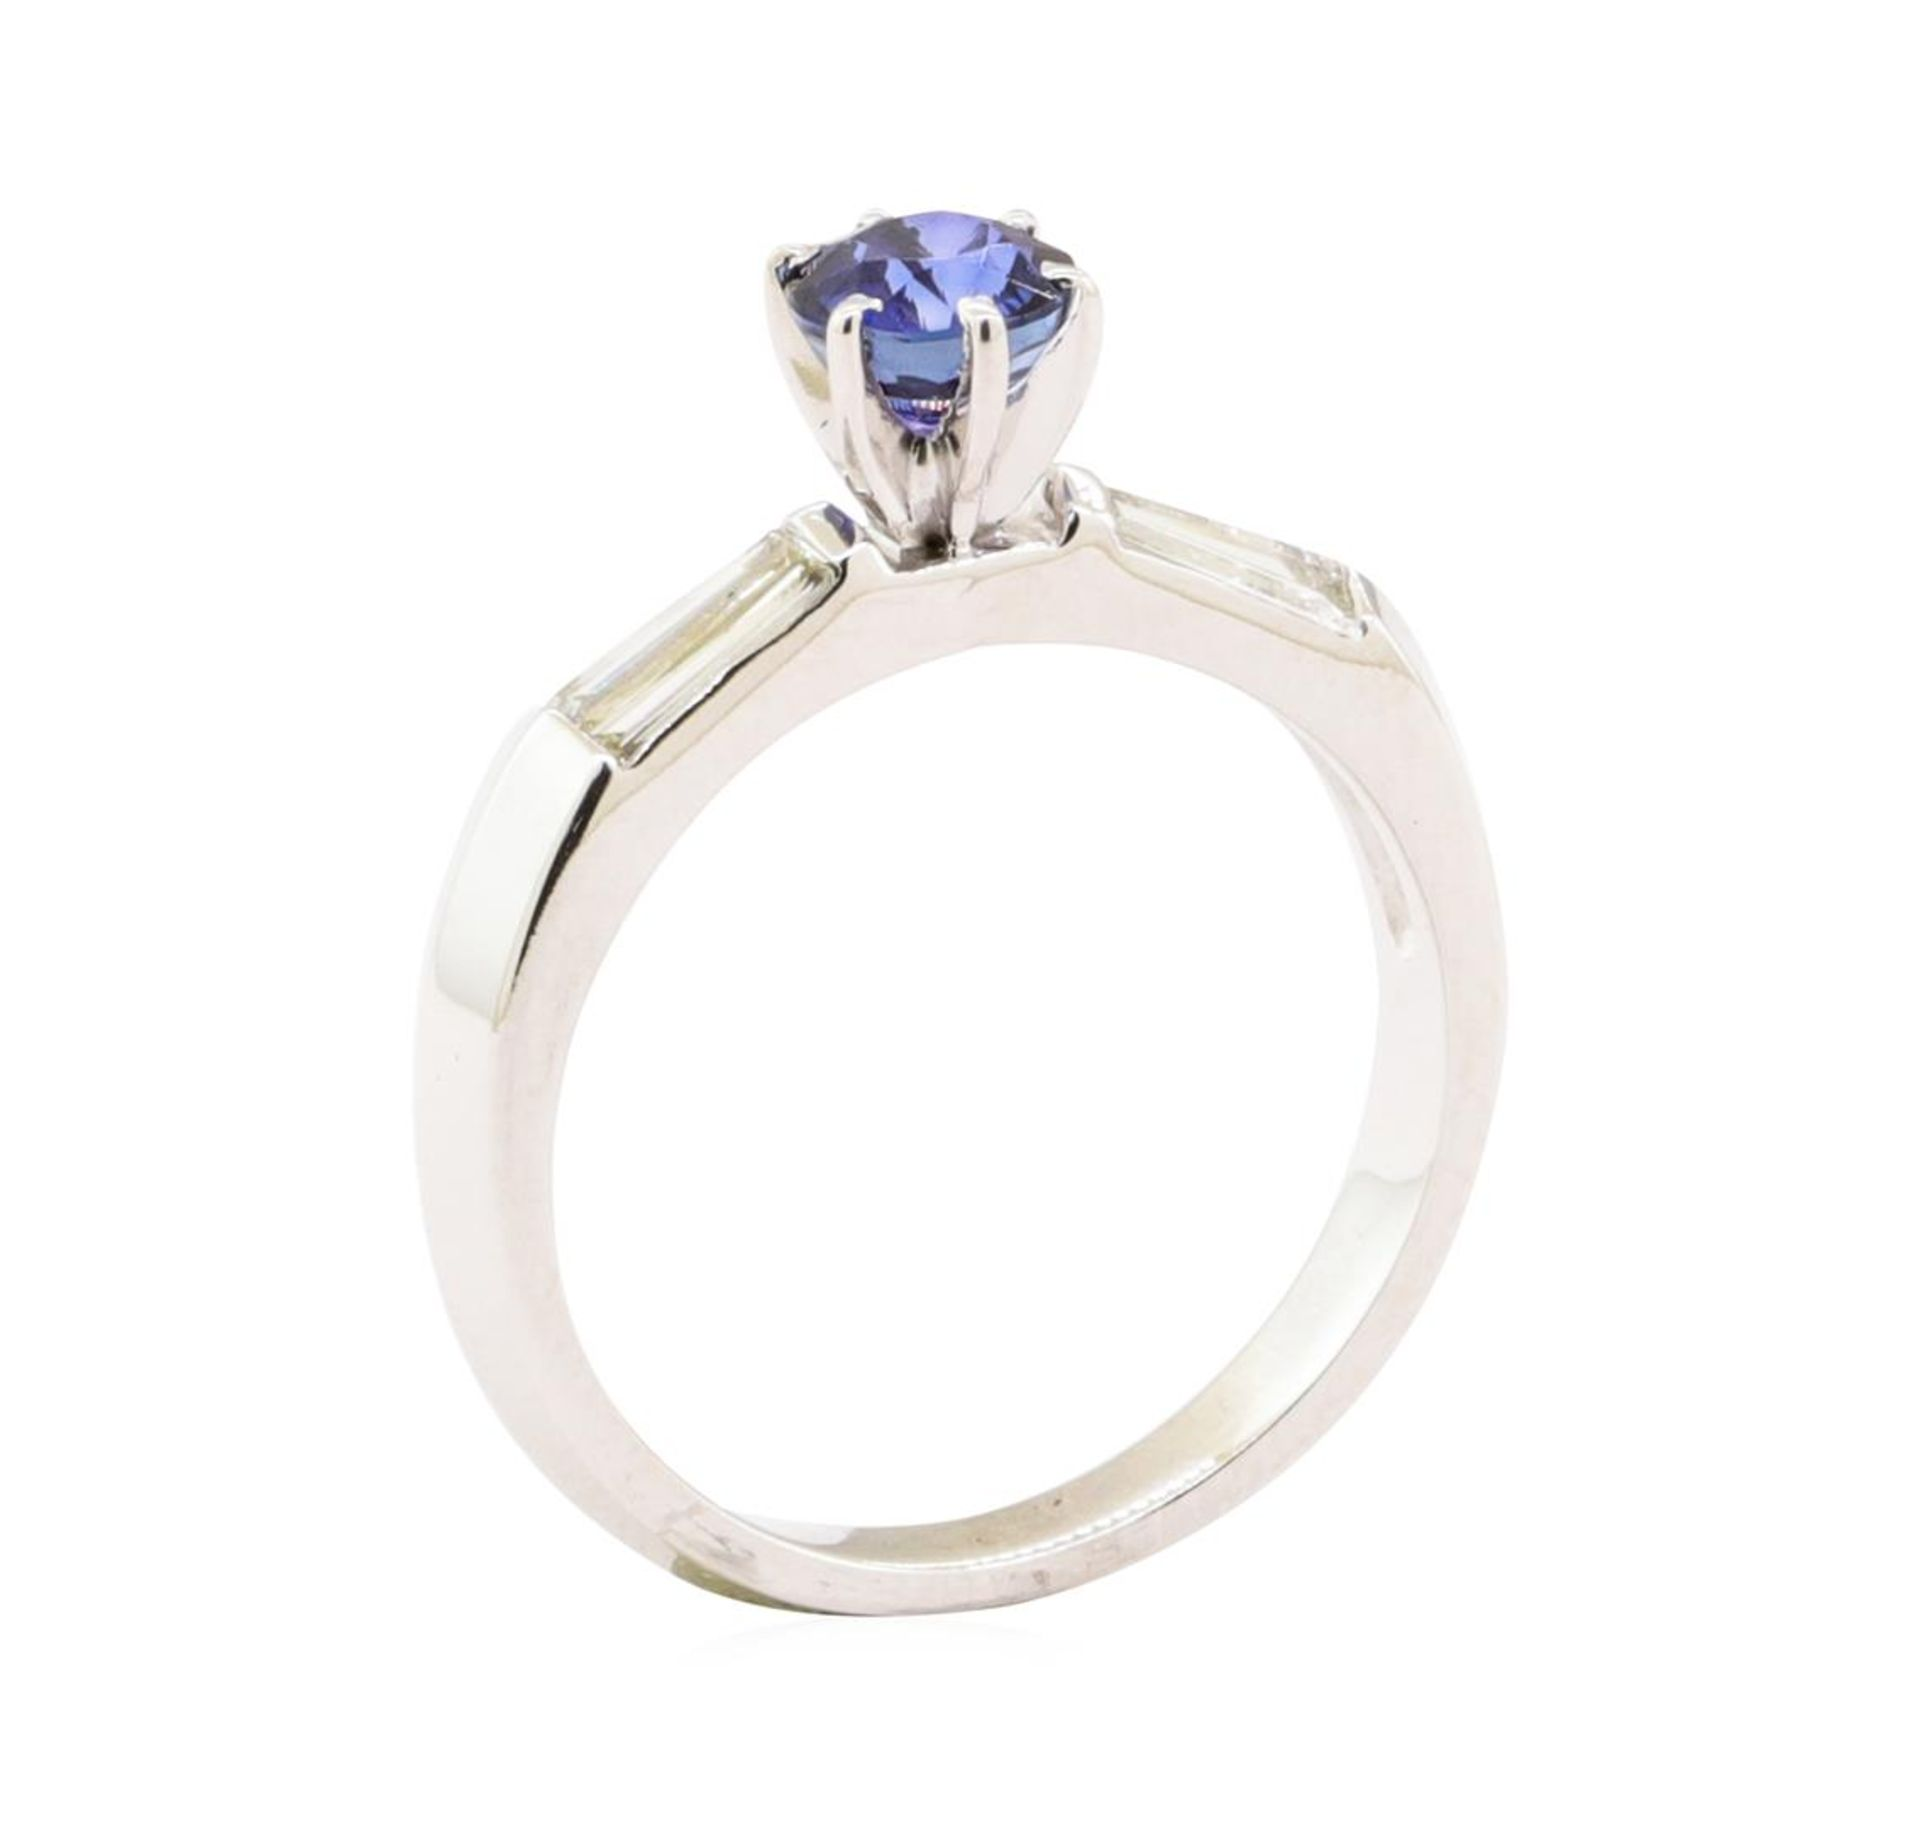 1.15 ctw Blue Sapphire And Diamond Ring - 18KT White Gold - Image 4 of 5